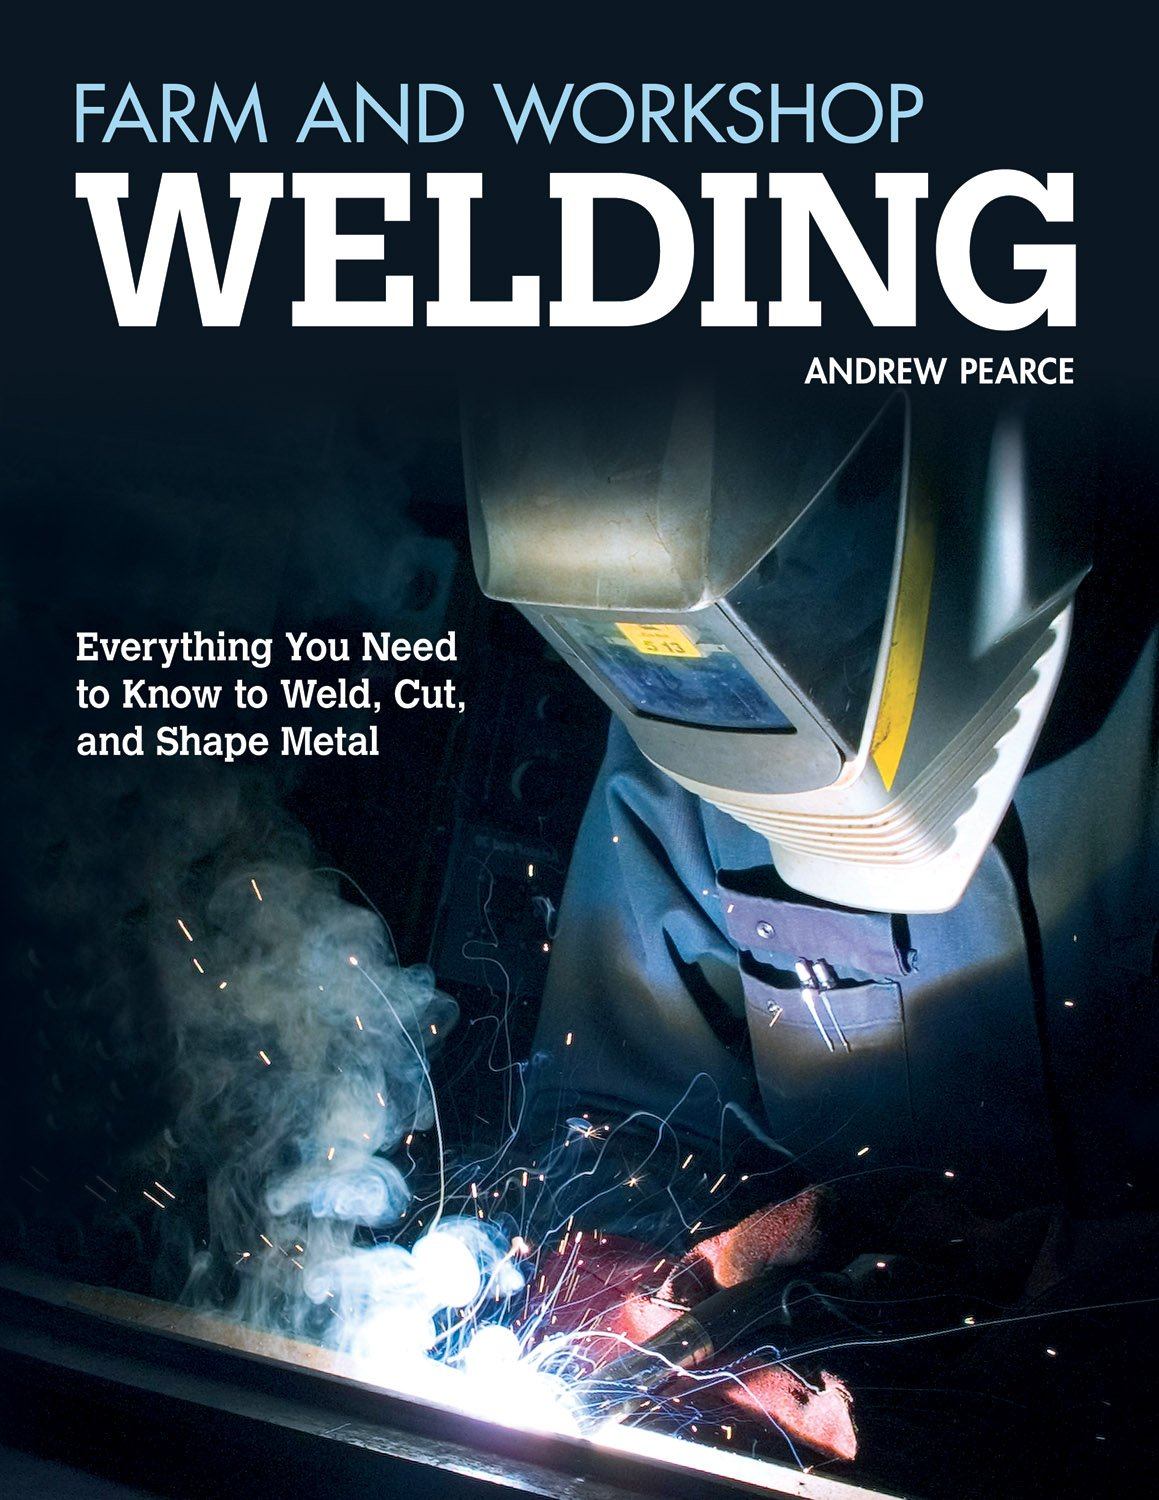 Farm And Workshop Welding Everything You Need To Know To Weld Cut And Shape Metal Fox Chapel Publishing Over 400 Step By Step Photos To Help You Learn Hands On Welding And Avoid Common Mistakes